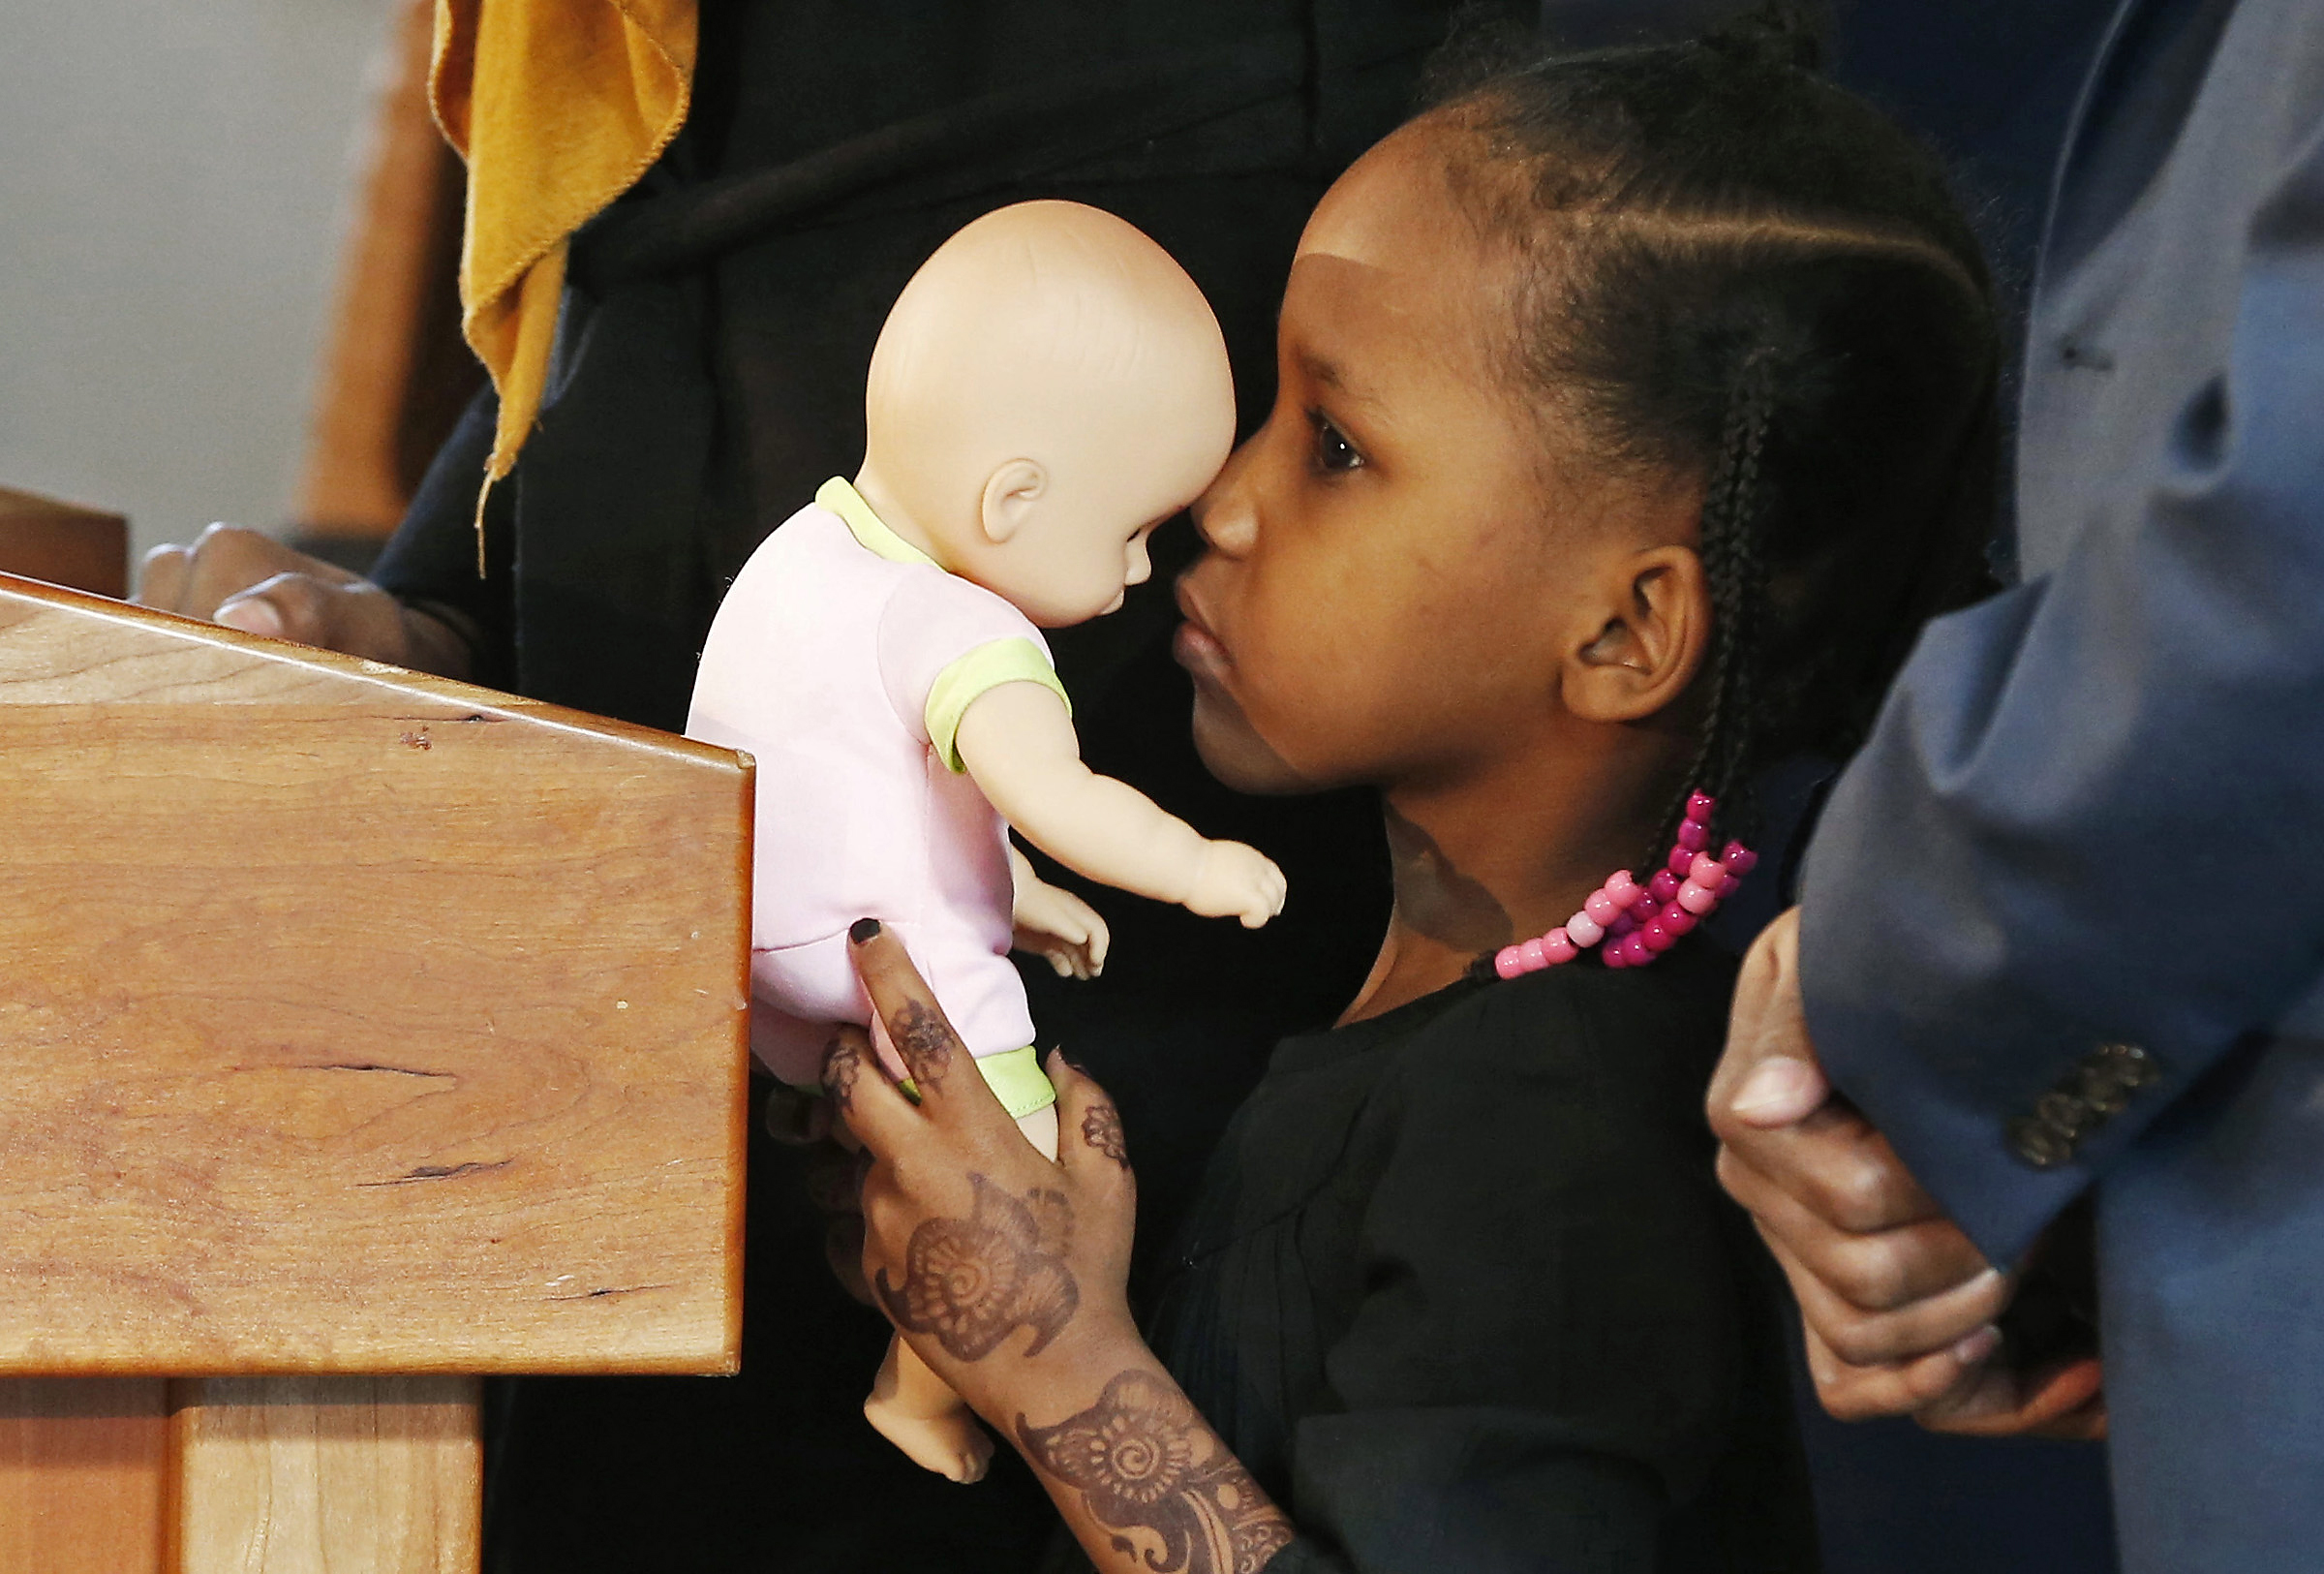 FILE - In this Feb. 3, 2017, file photo, four-year-old Somali refugee Mushkaad Abdi holds her doll as her mother, Samira Dahir, talks during a Minneapolis news conference one day after she was reunited with her family. Her trip from Uganda to Minnesota was held up by President Donald Trump's Jan. 27 order barring refugees from seven predominantly Muslim nations. A federal judge in Hawaii further weakened the already-diluted travel ban Thursday, July 13, 2017, by vastly expanding the list of U.S. family relationships that visitors from six Muslim-majority countries can use to get into the country. (AP Photo/Jim Mone, File)